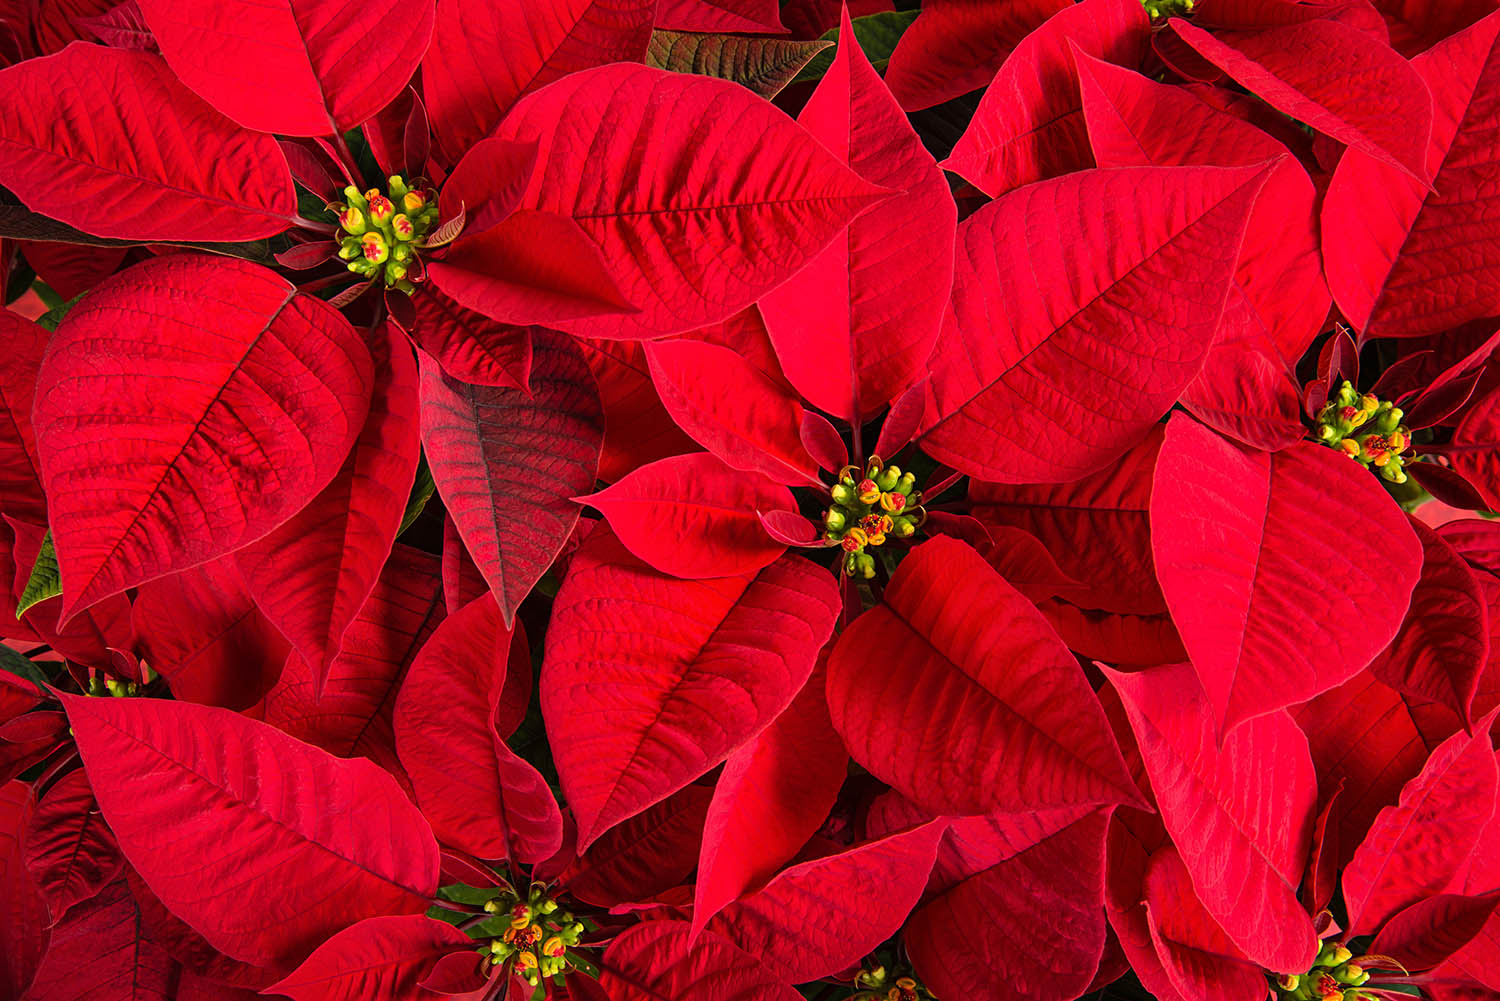 Poinsettia Plant Fun Facts & Care